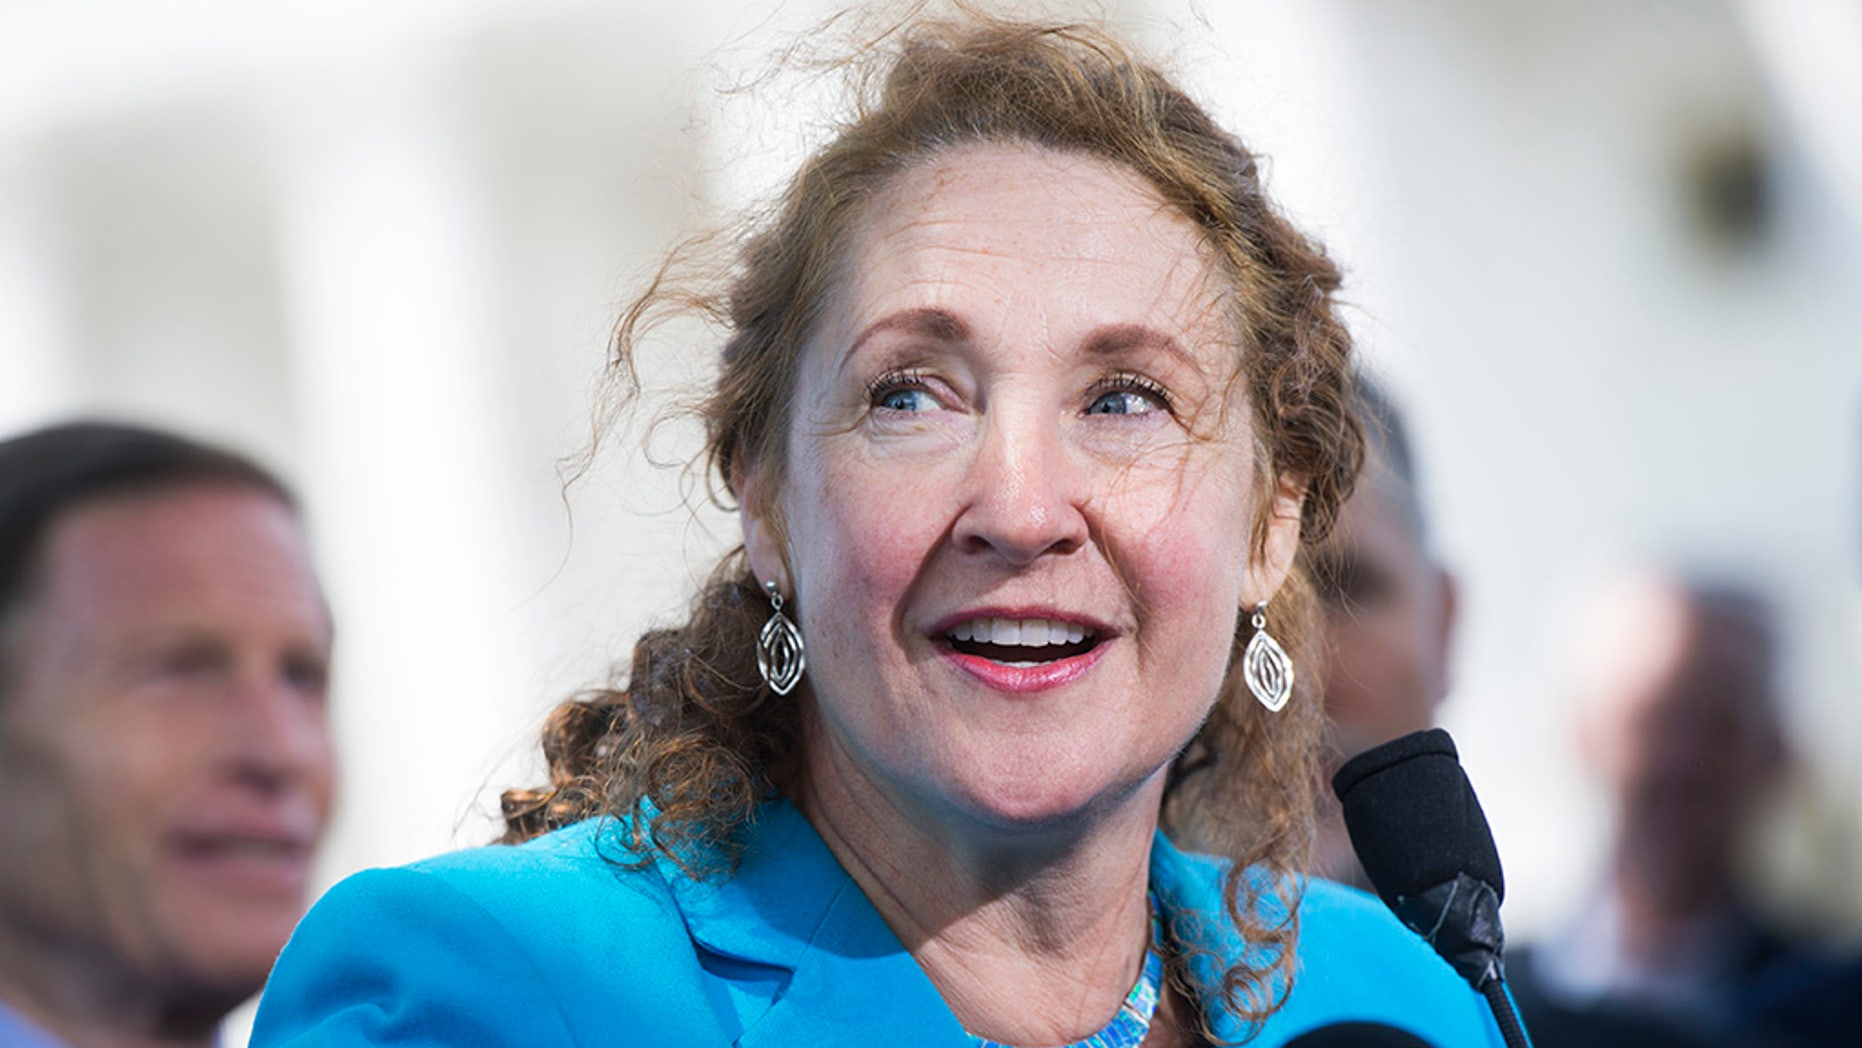 Democratic Rep. Elizabeth Esty is being asked to resign after reports surfaced that she hid allegations of harassment.